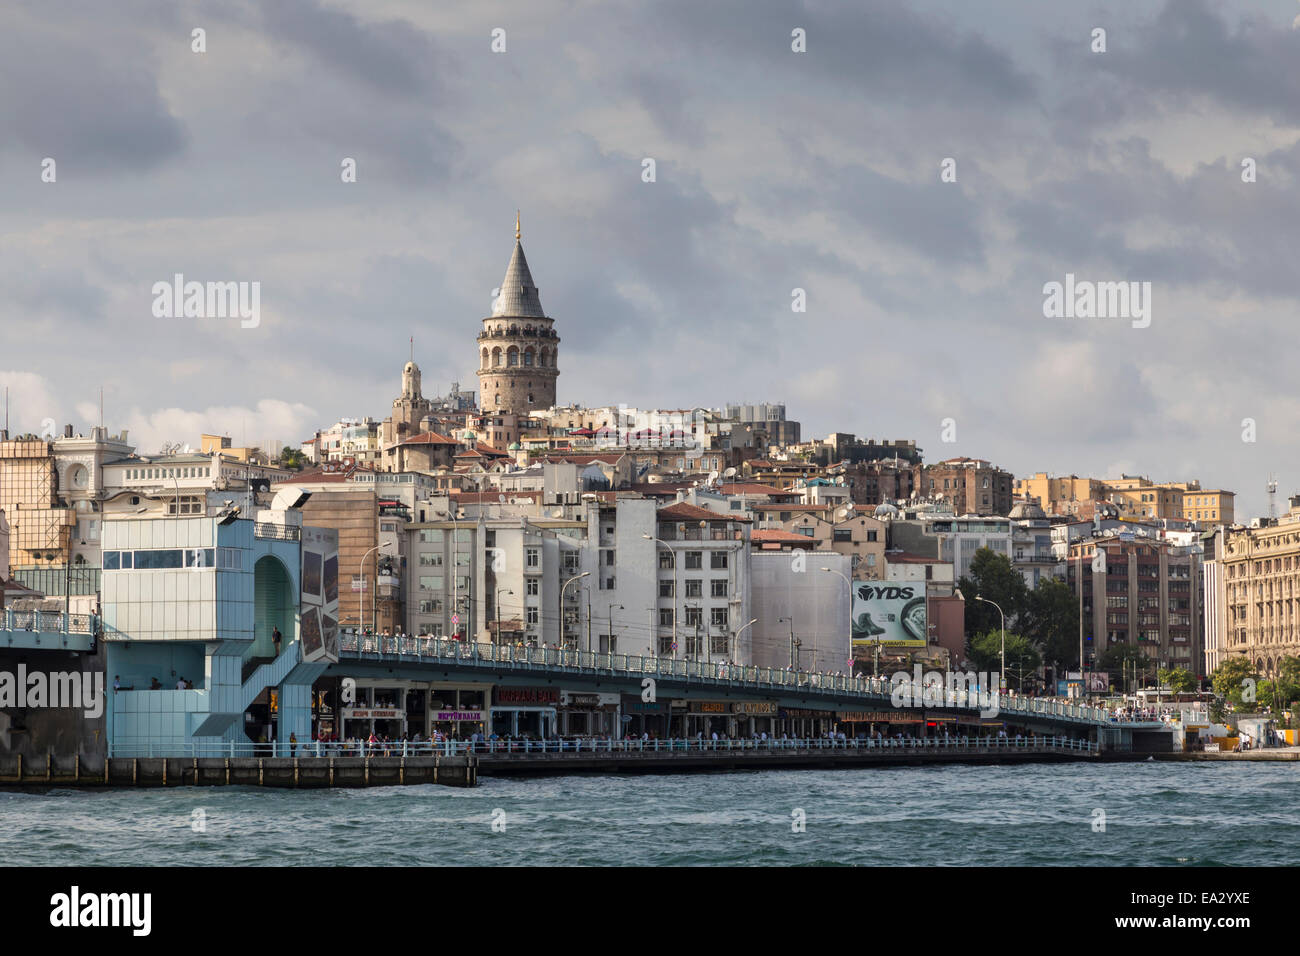 Galata Bridge across the Golden Horn, Beyoglu District, Istanbul, Turkey, Eurasia - Stock Image